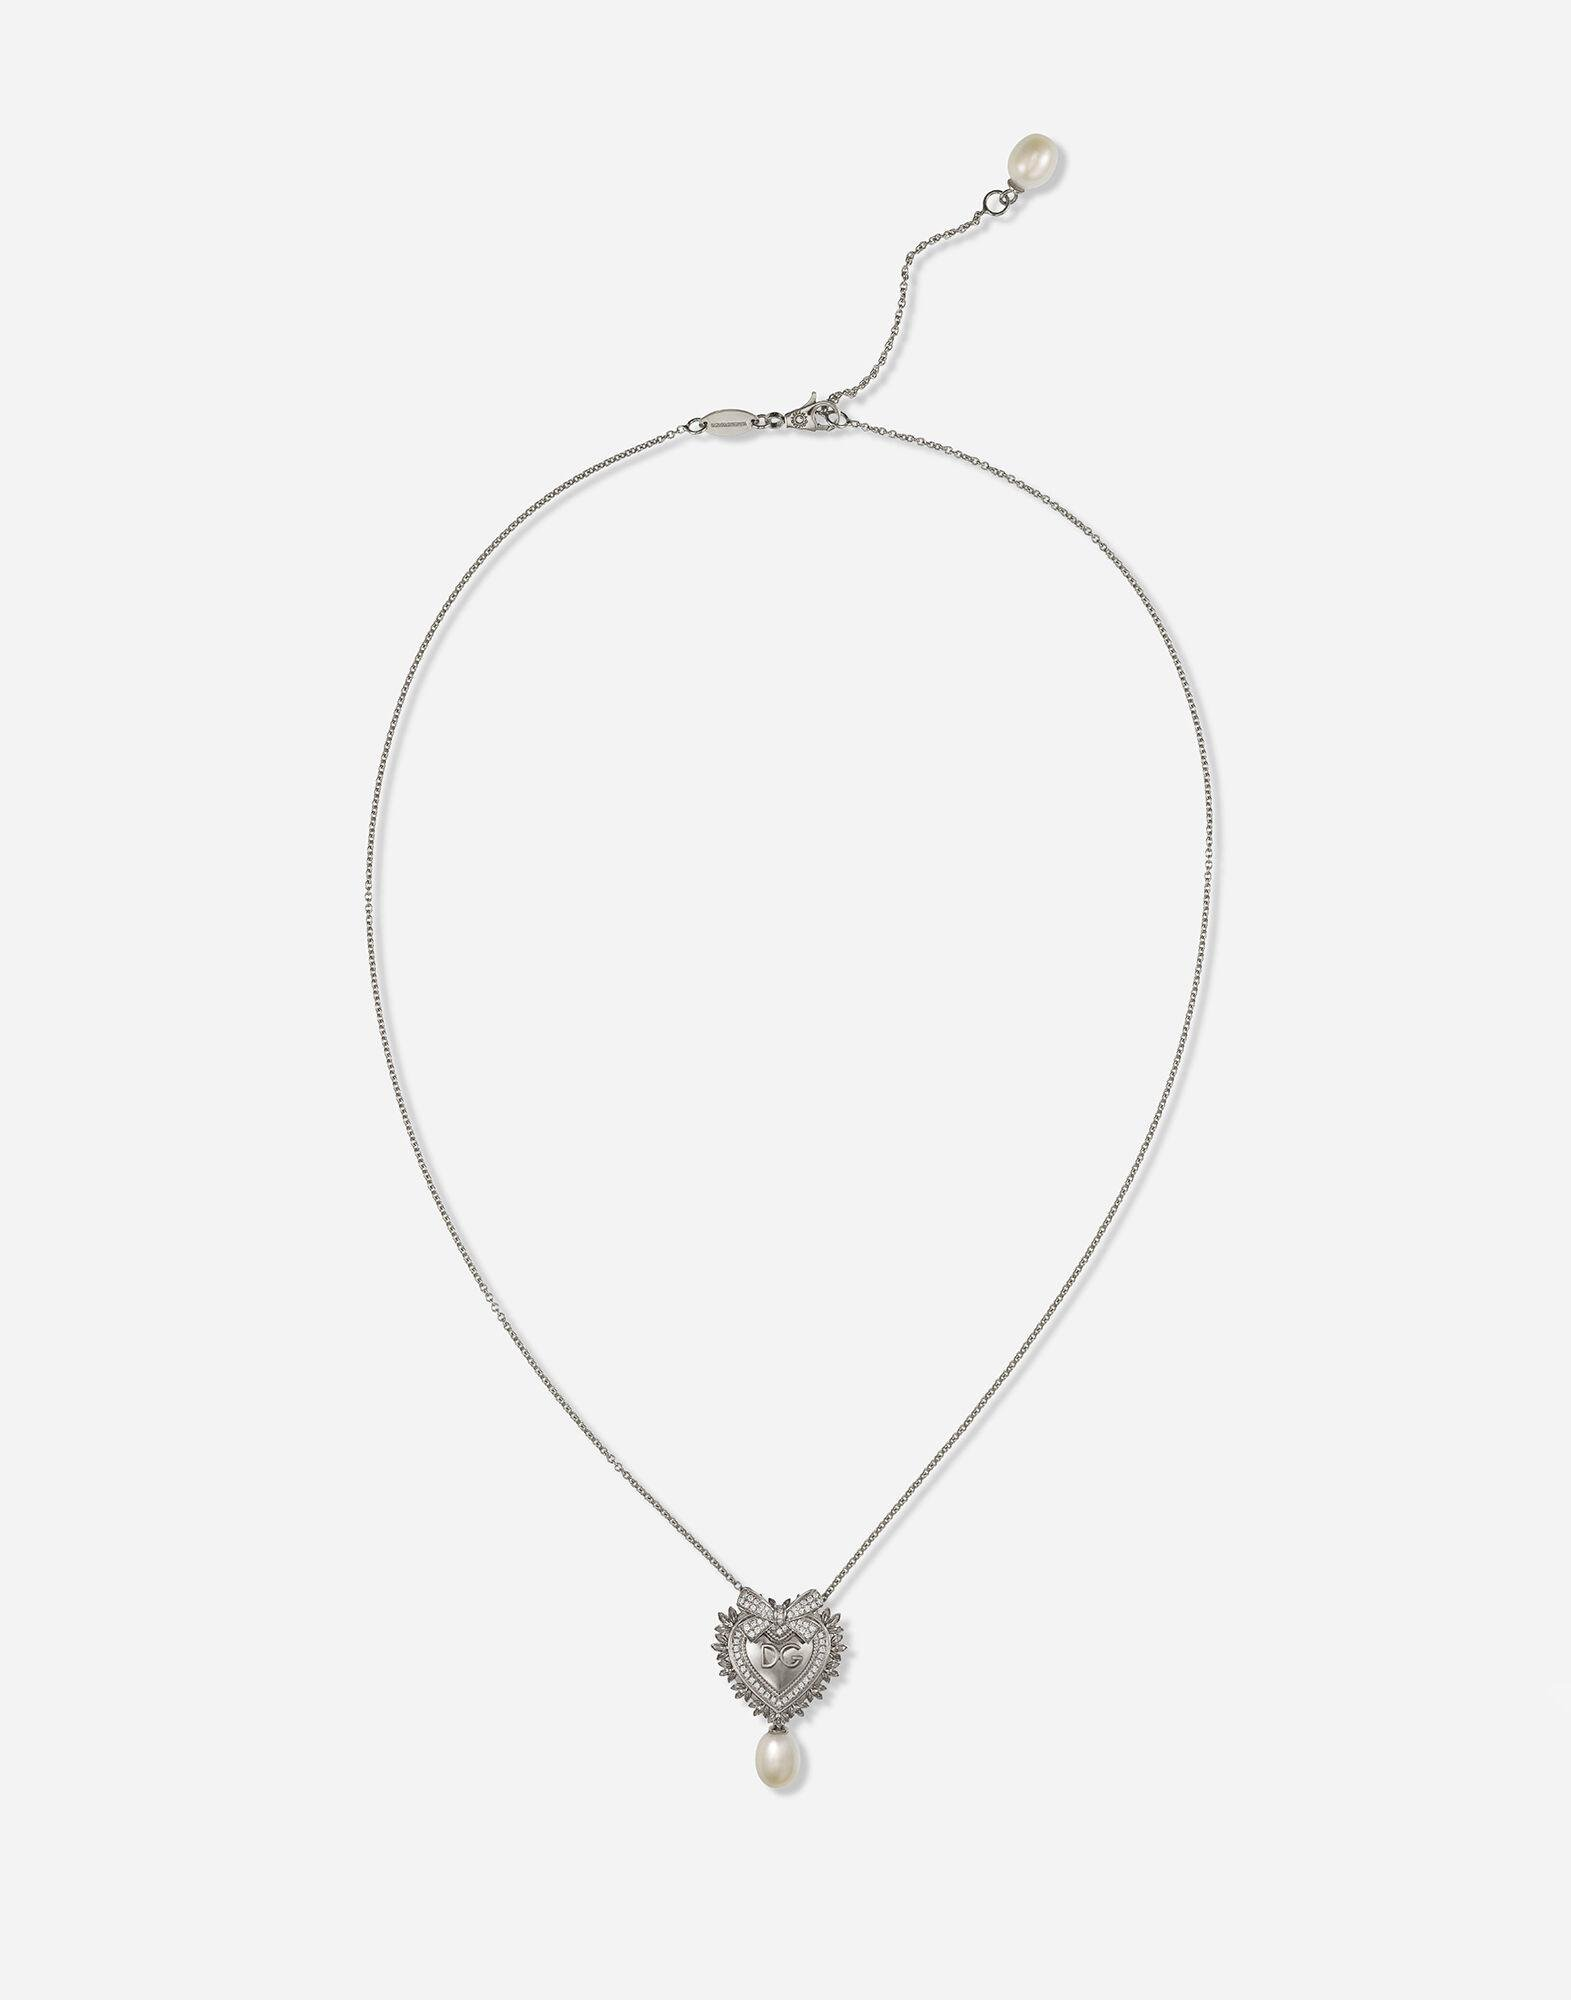 Devotion necklace in white gold with diamonds and pearls